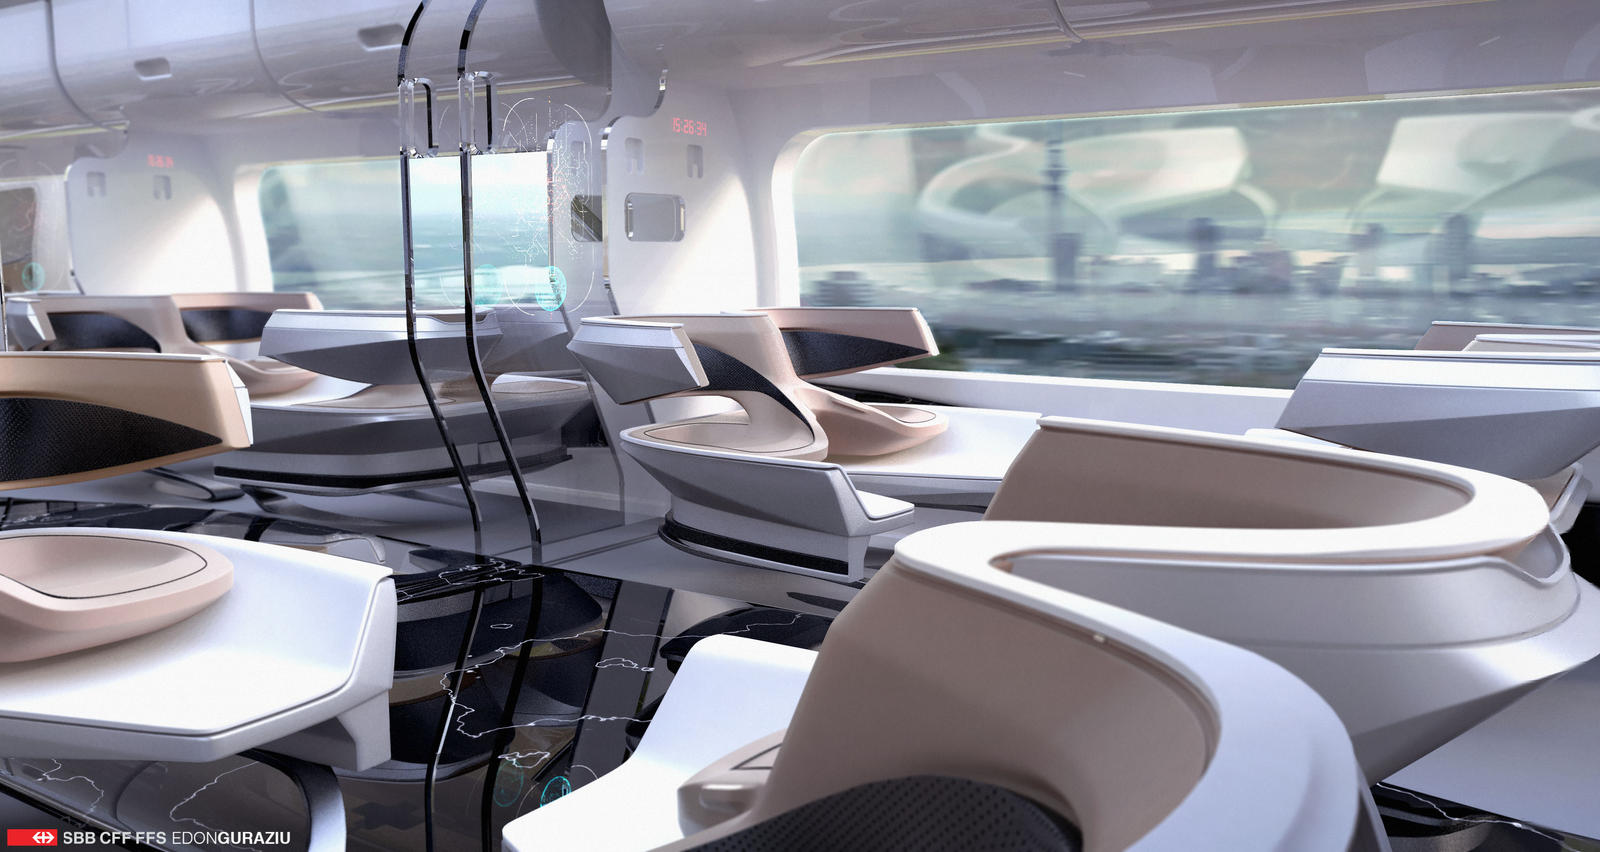 Futuristic Train Interior Design 2 By Edonguraziu On